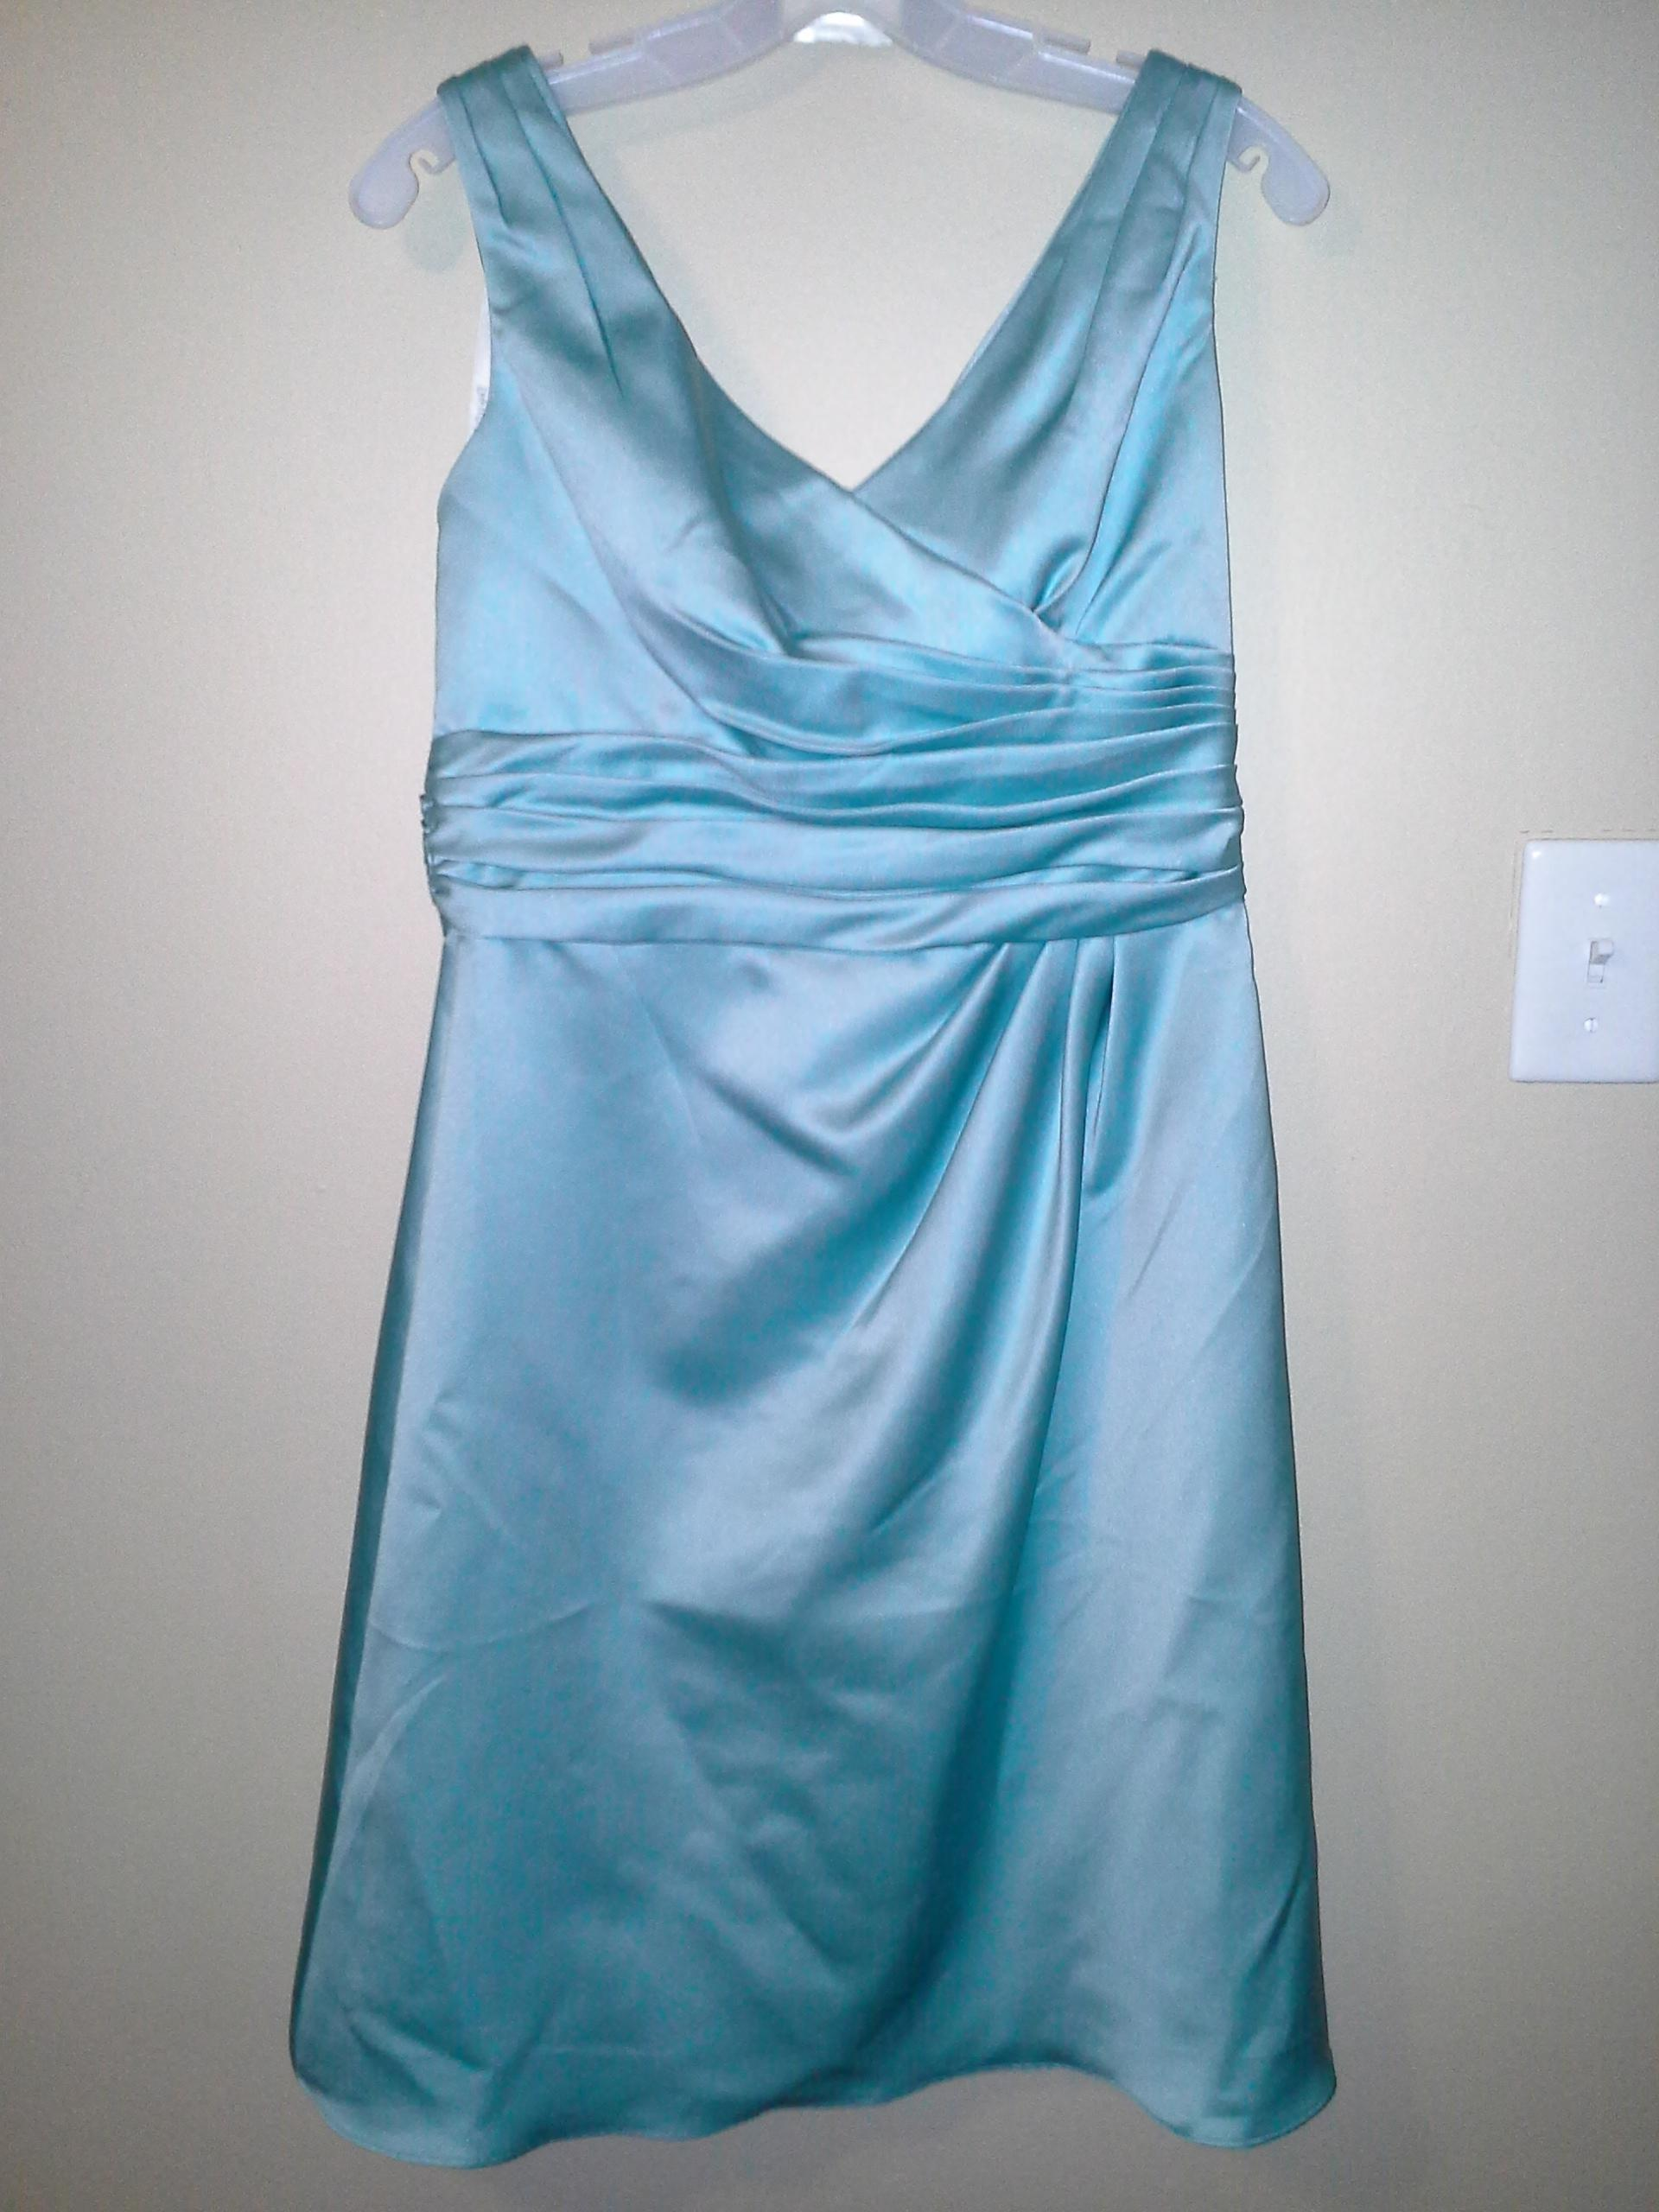 David s Bridal Light Blue F14823 Formal Bridesmaid Mob Dress Size 8     David s Bridal Light Blue F14823 Formal Bridesmaid Mob Dress Size 8  M